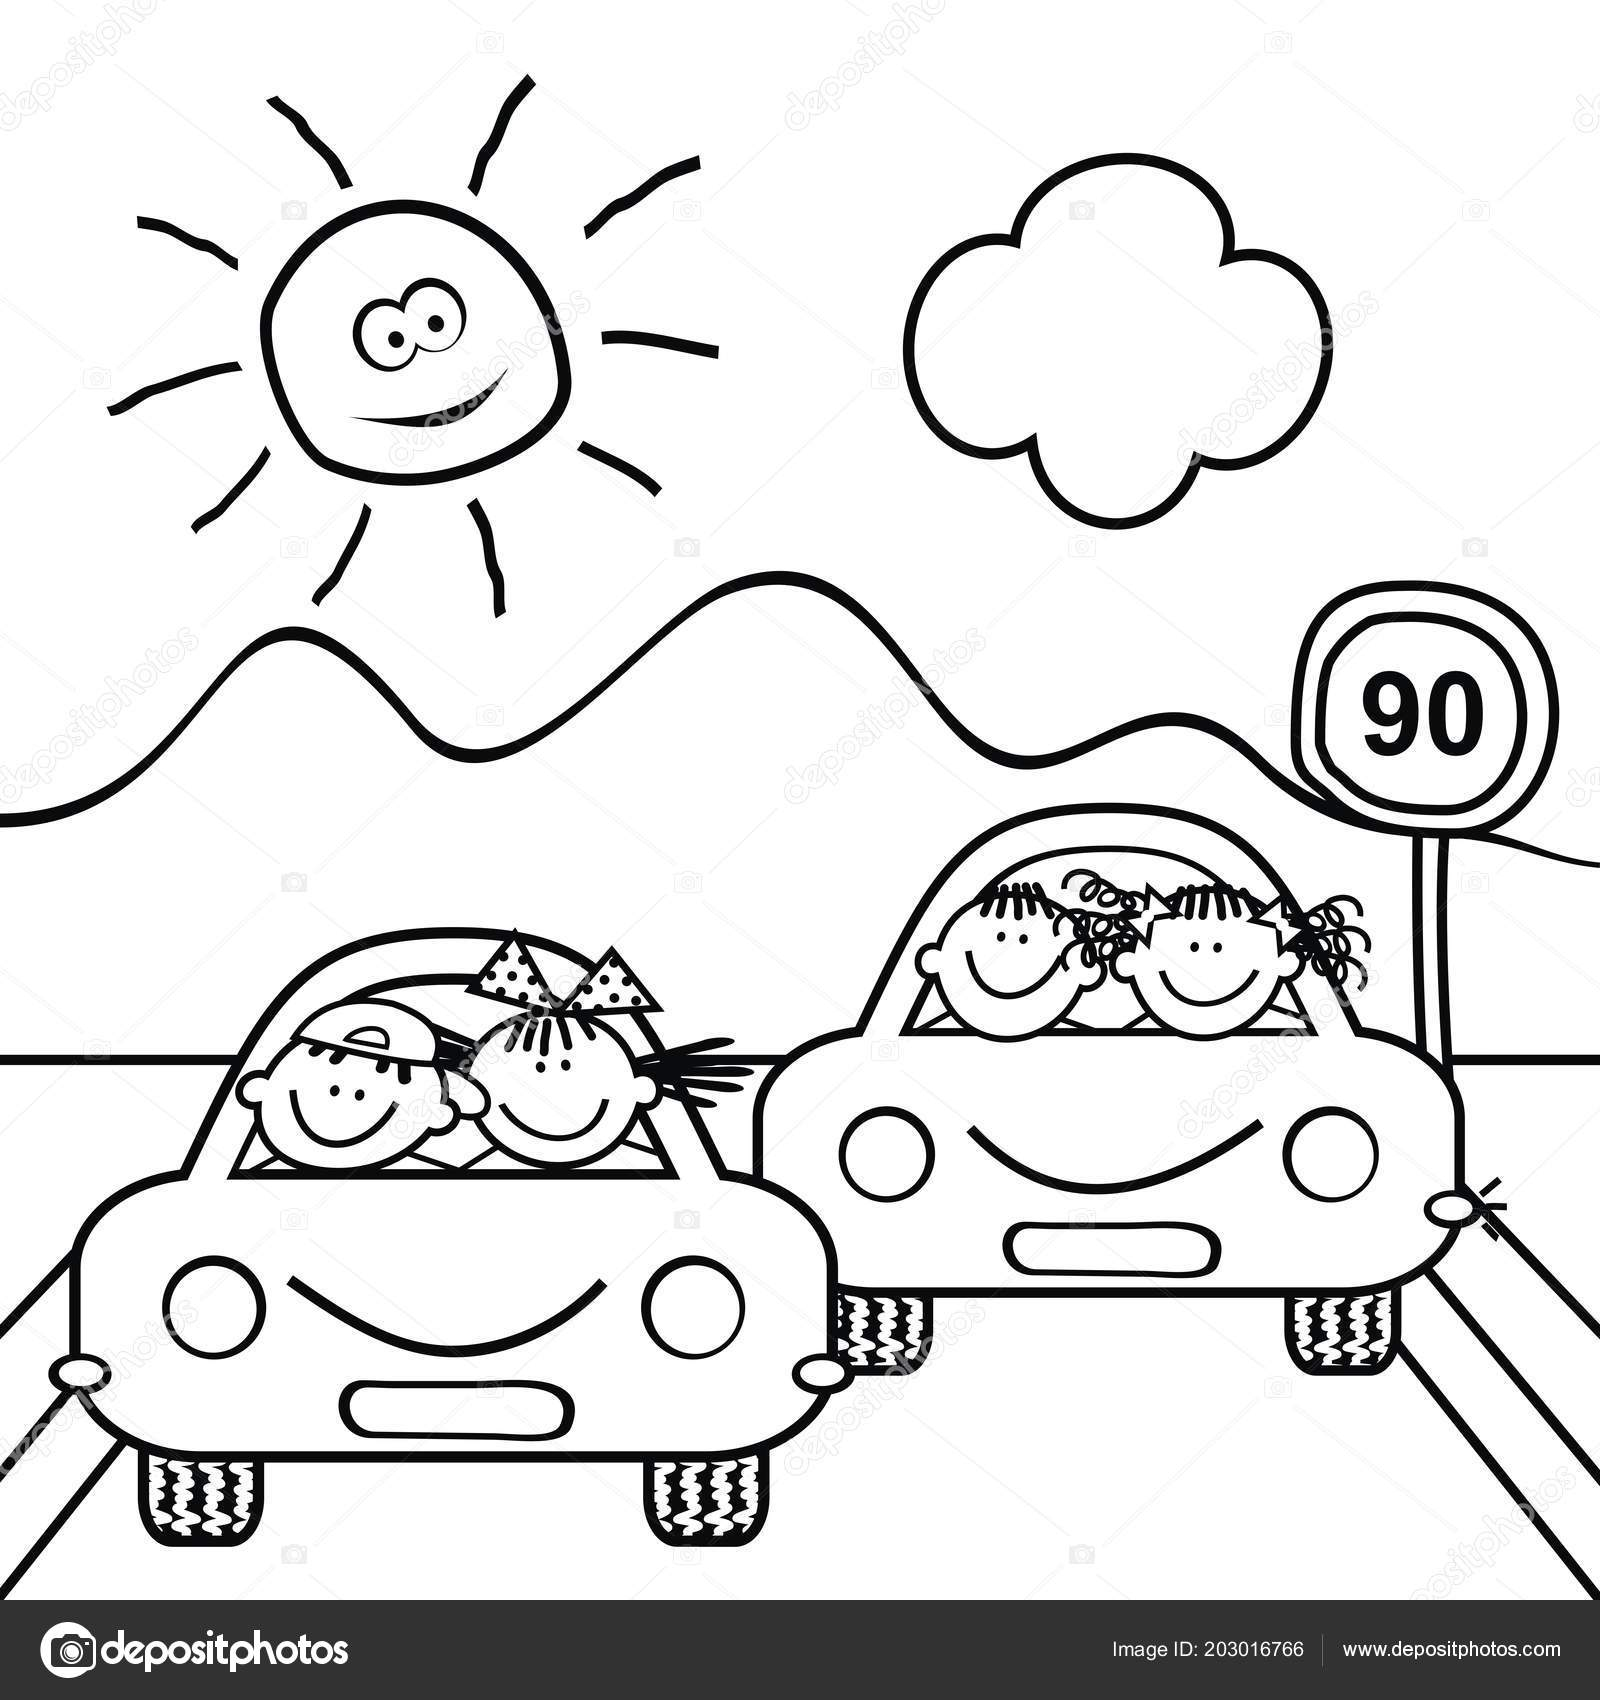 Kids Cars Traffic Sign Landscape Coloring Book Children Vector Icon